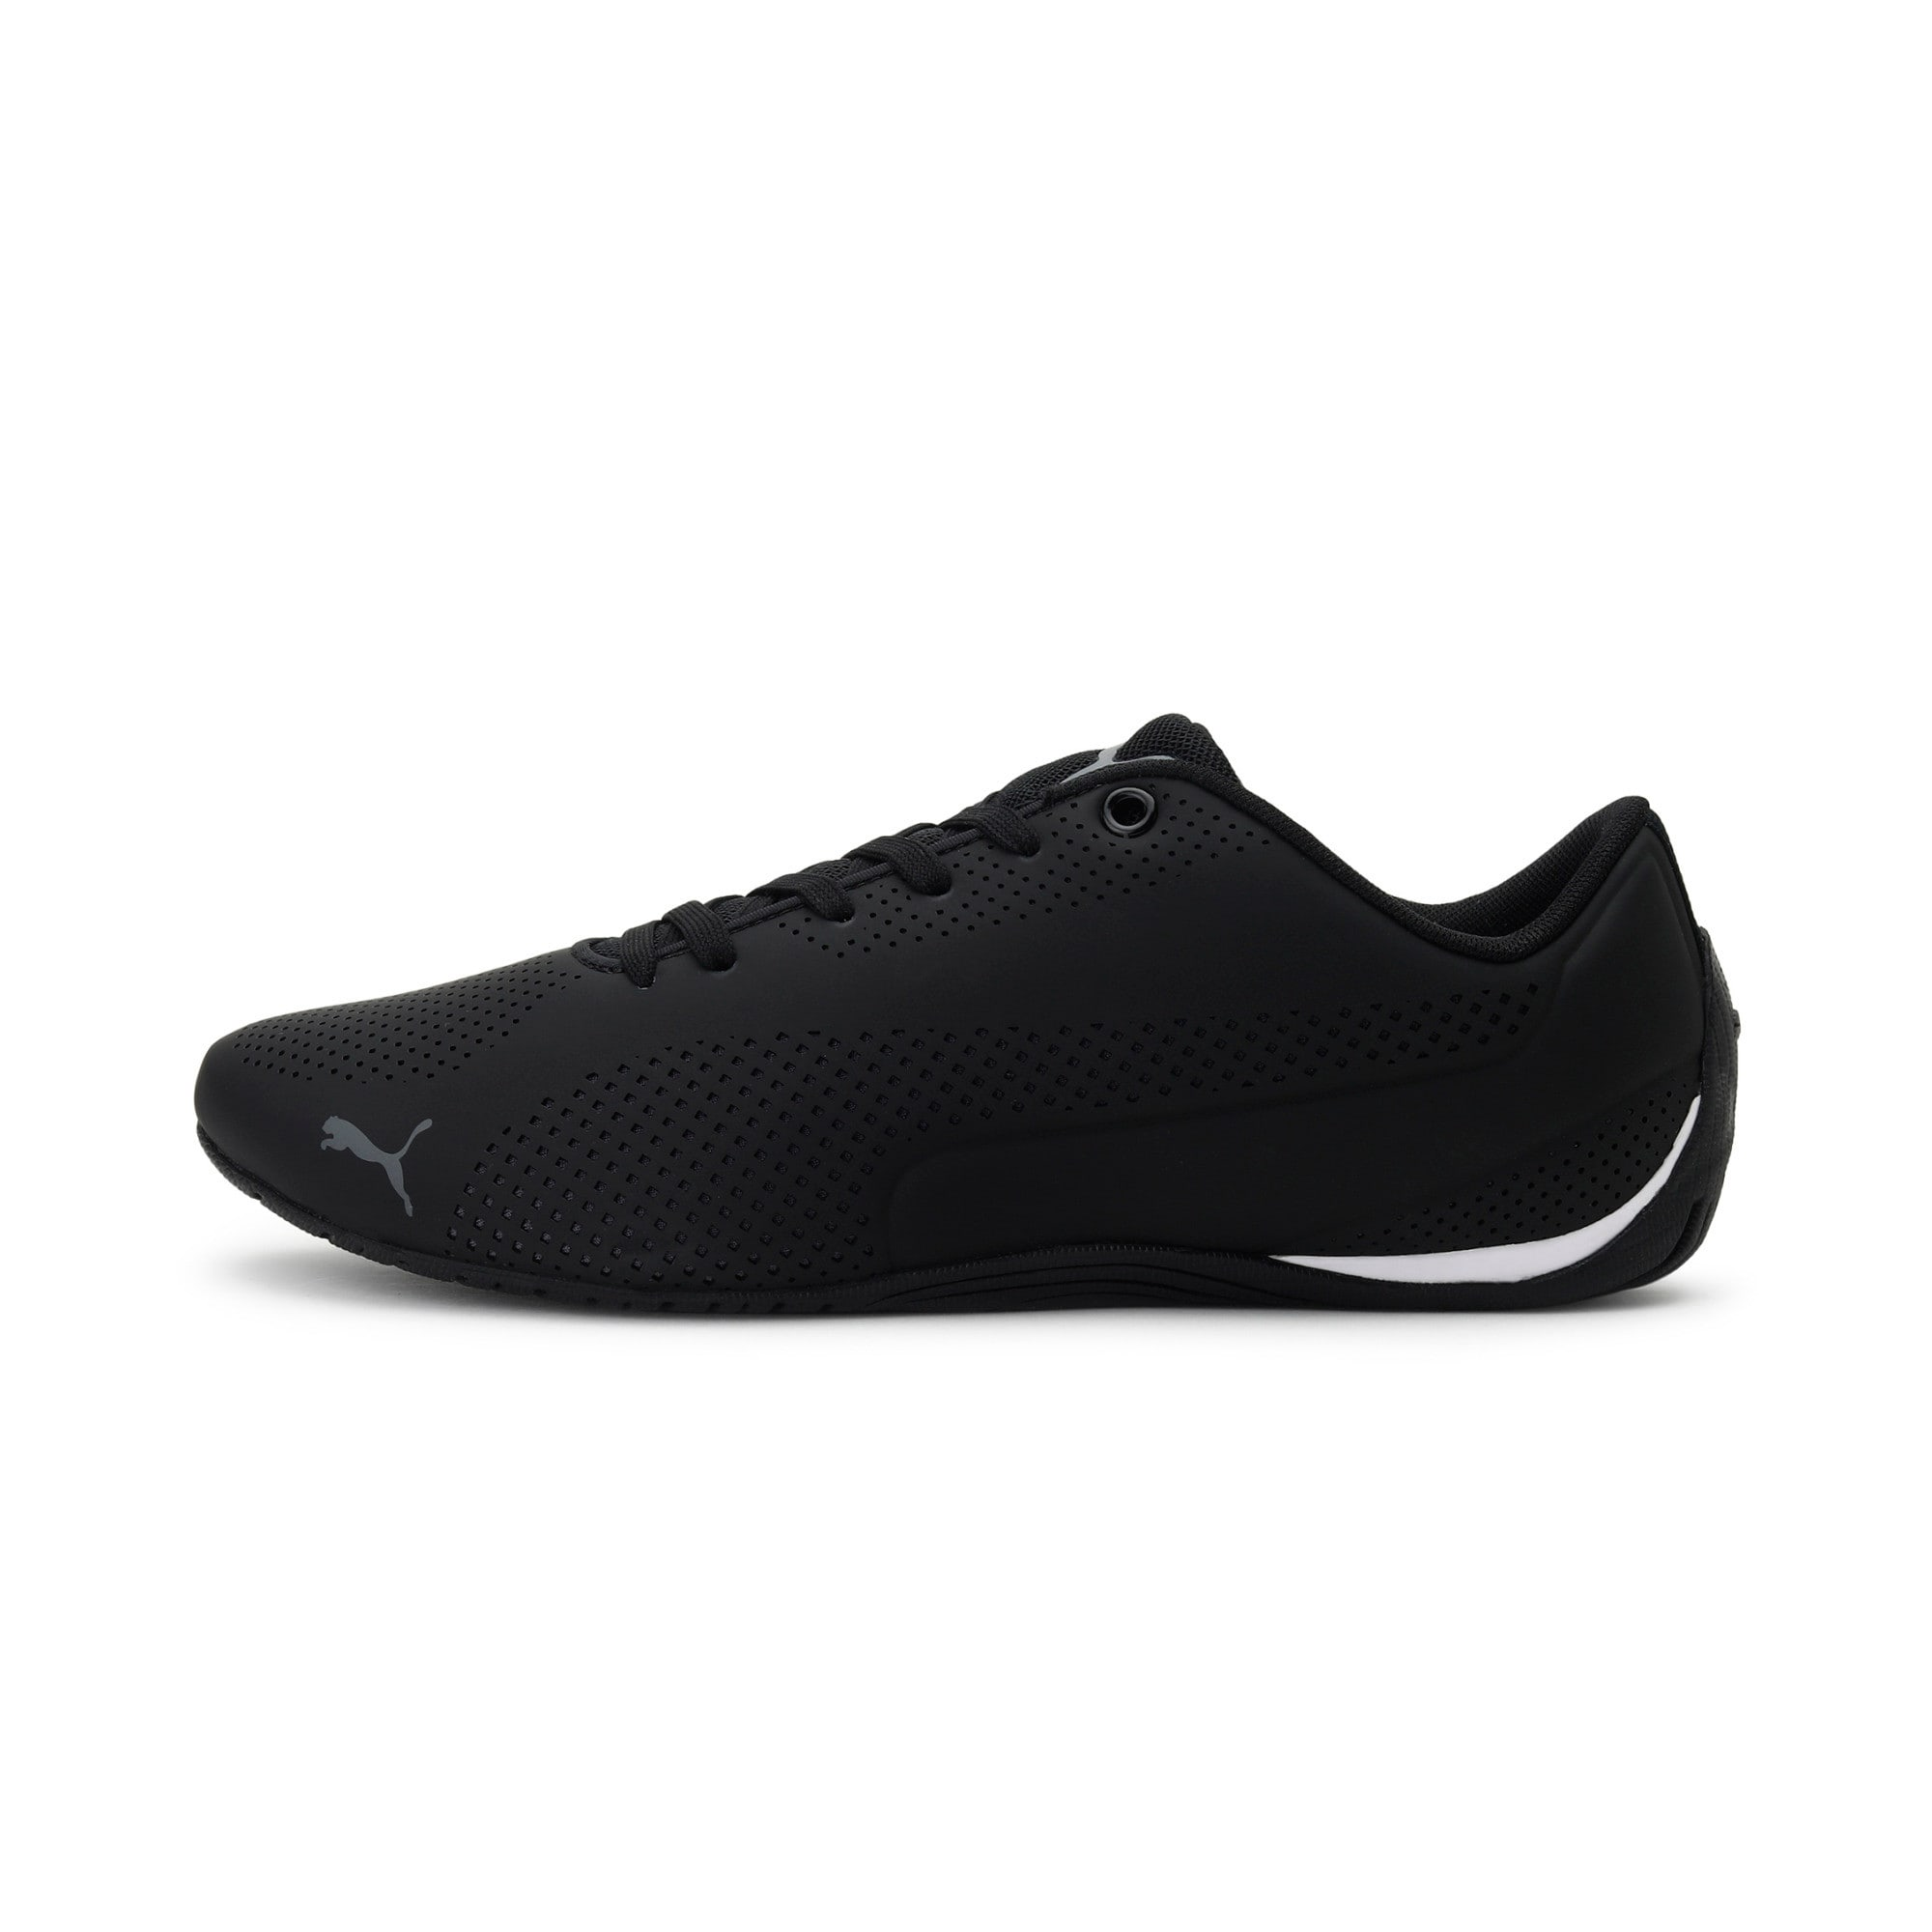 Thumbnail 1 of Drift Cat 5 Ultra Trainers, Puma Black-QUIET SHADE, medium-IND